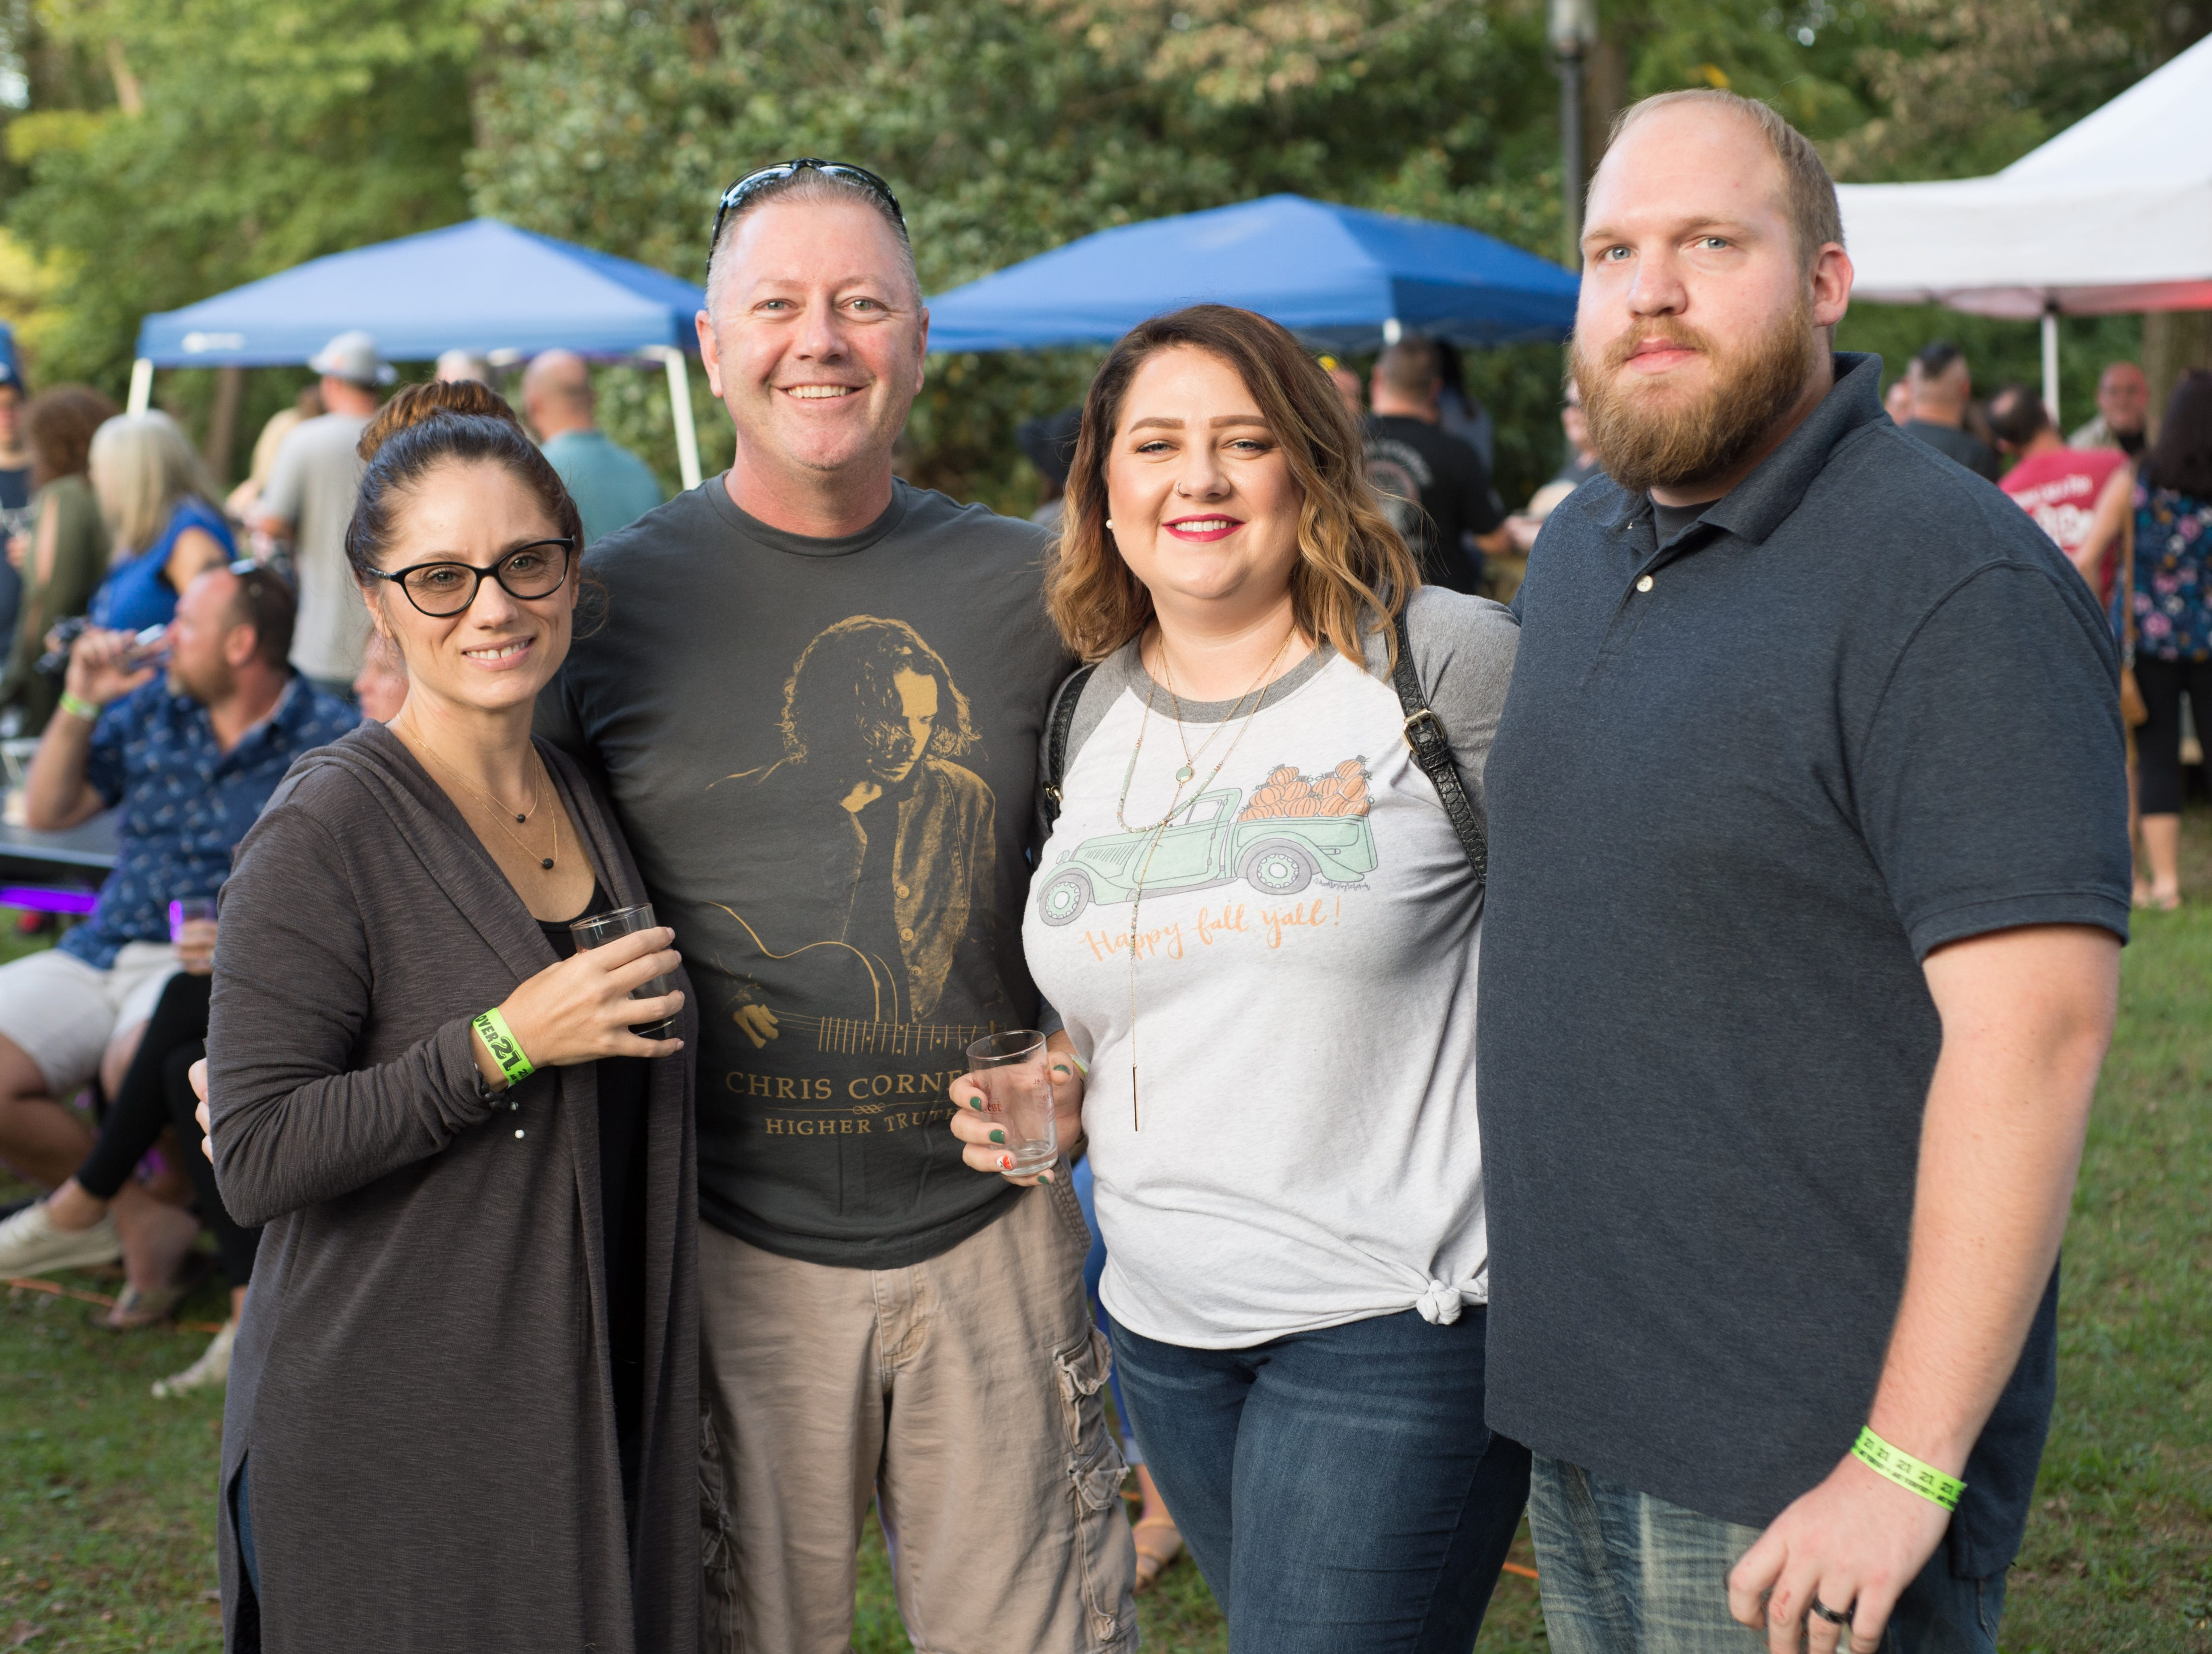 Kimberly Thornhill, Mike Roberts, Amber and Jonathan Clover pause for a photograph during Oktoberfest at Oaklands Mansion in Murfreesboro on Saturday, Sept. 29.